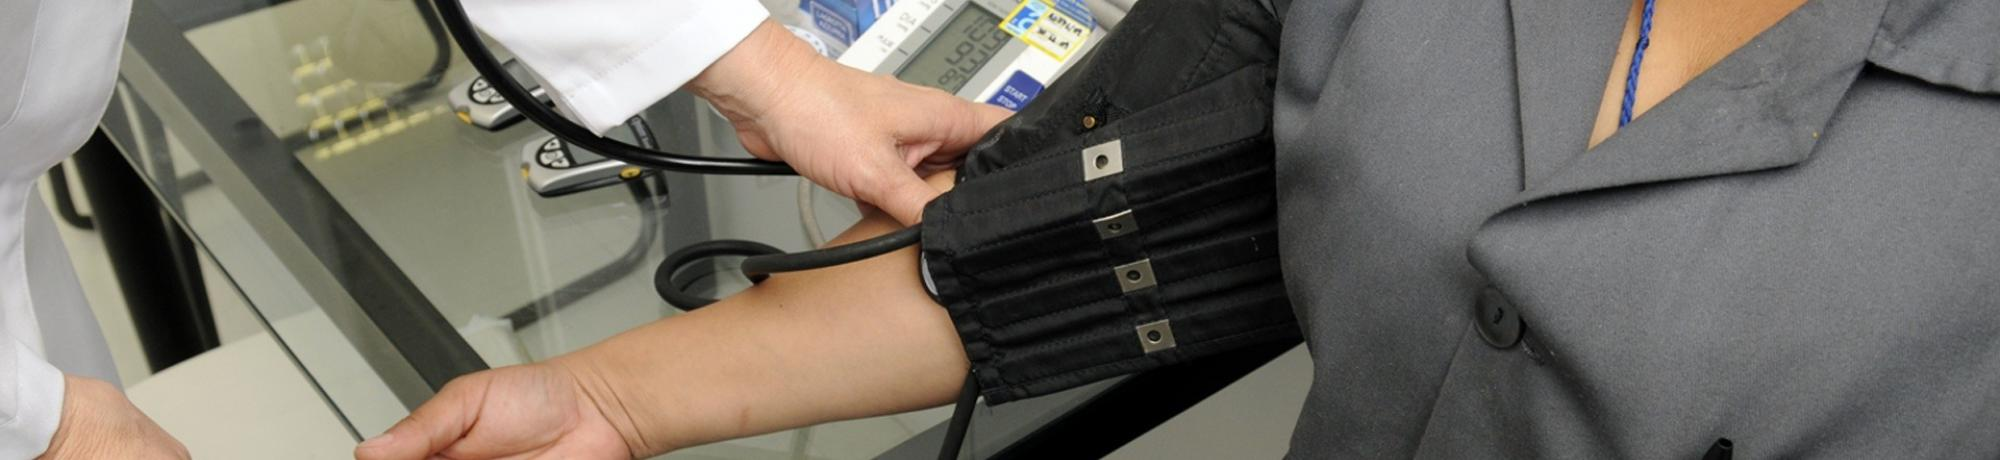 Doctor checking patient's blood pressure with cuff